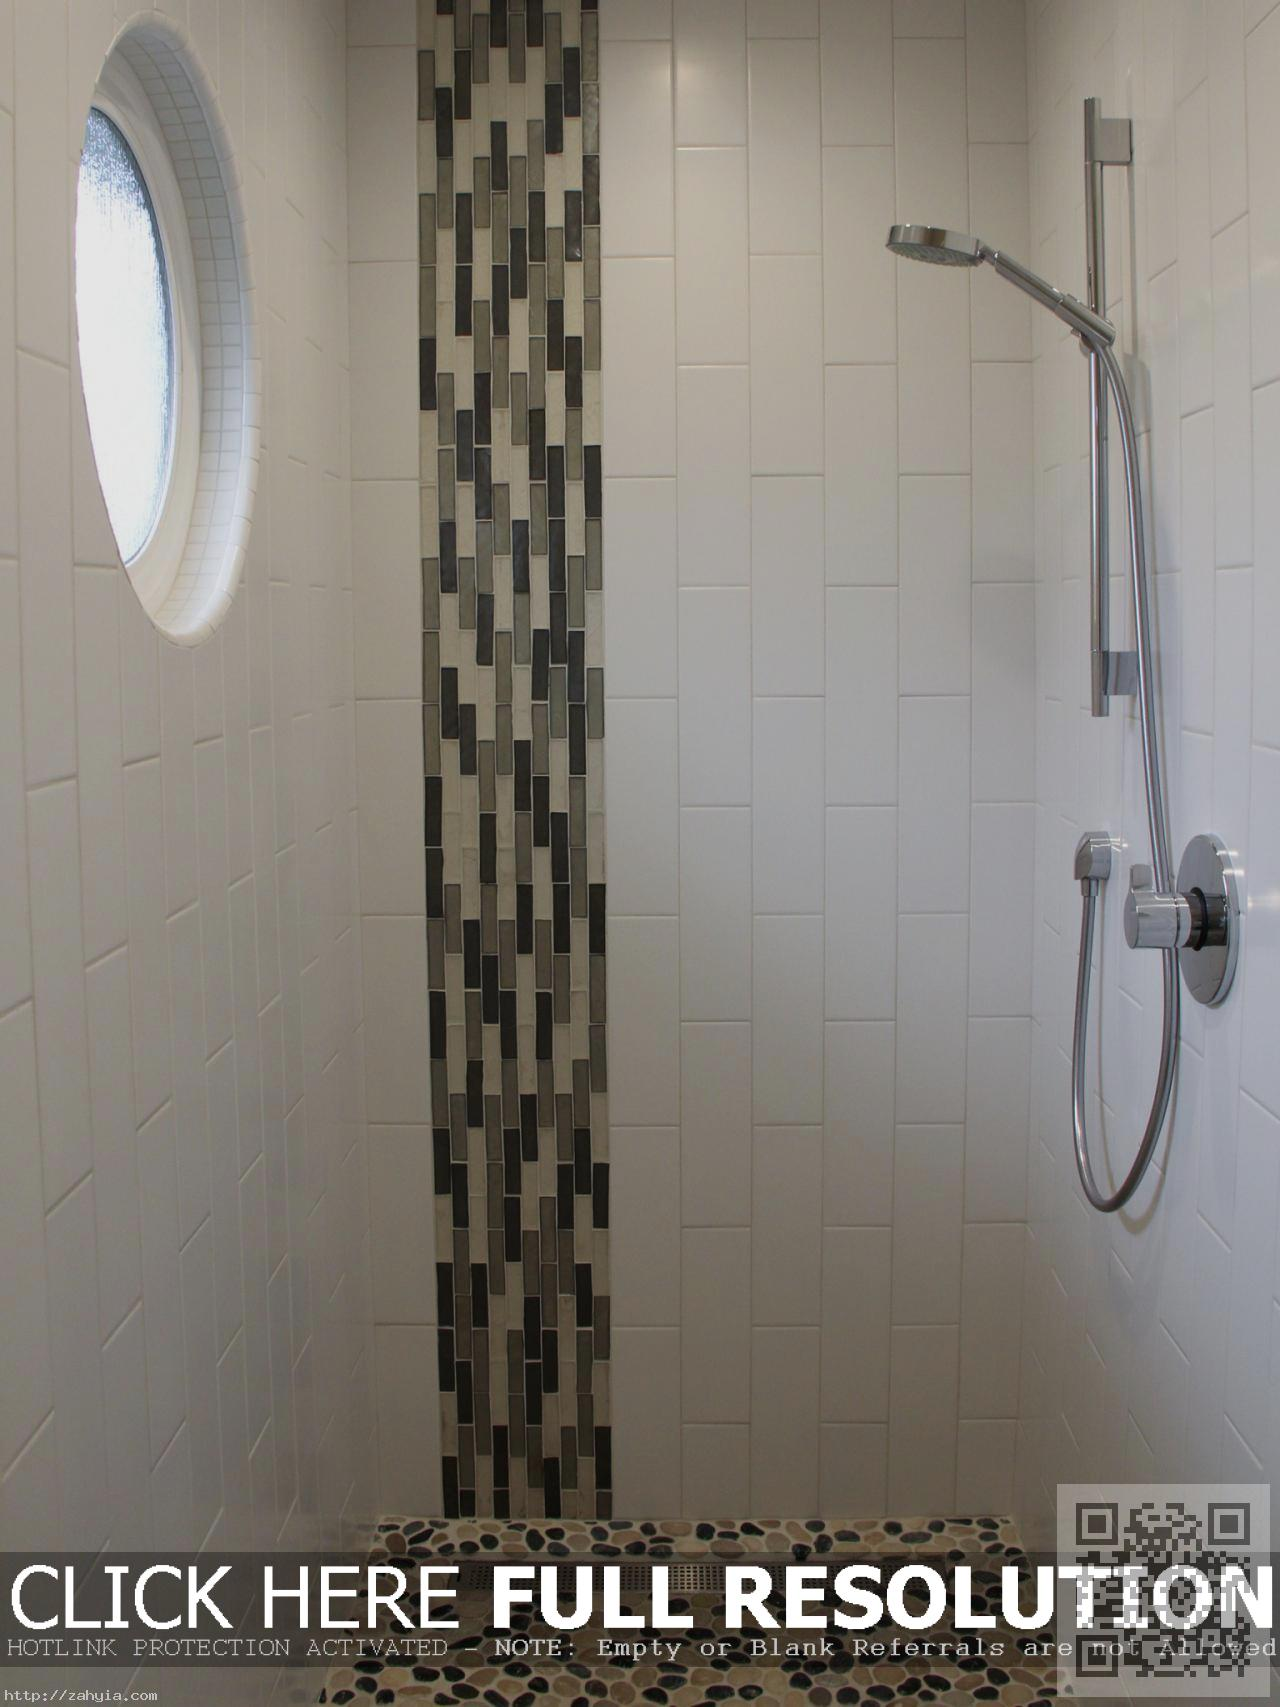 bathroom-interior-vertical-white-ceramic-glass-tile-shower-room-wall-panel-with-rounded-glass-window-plus-black-and-gray-glass-mosaic-accent-shower-designs-with-glass-tile16